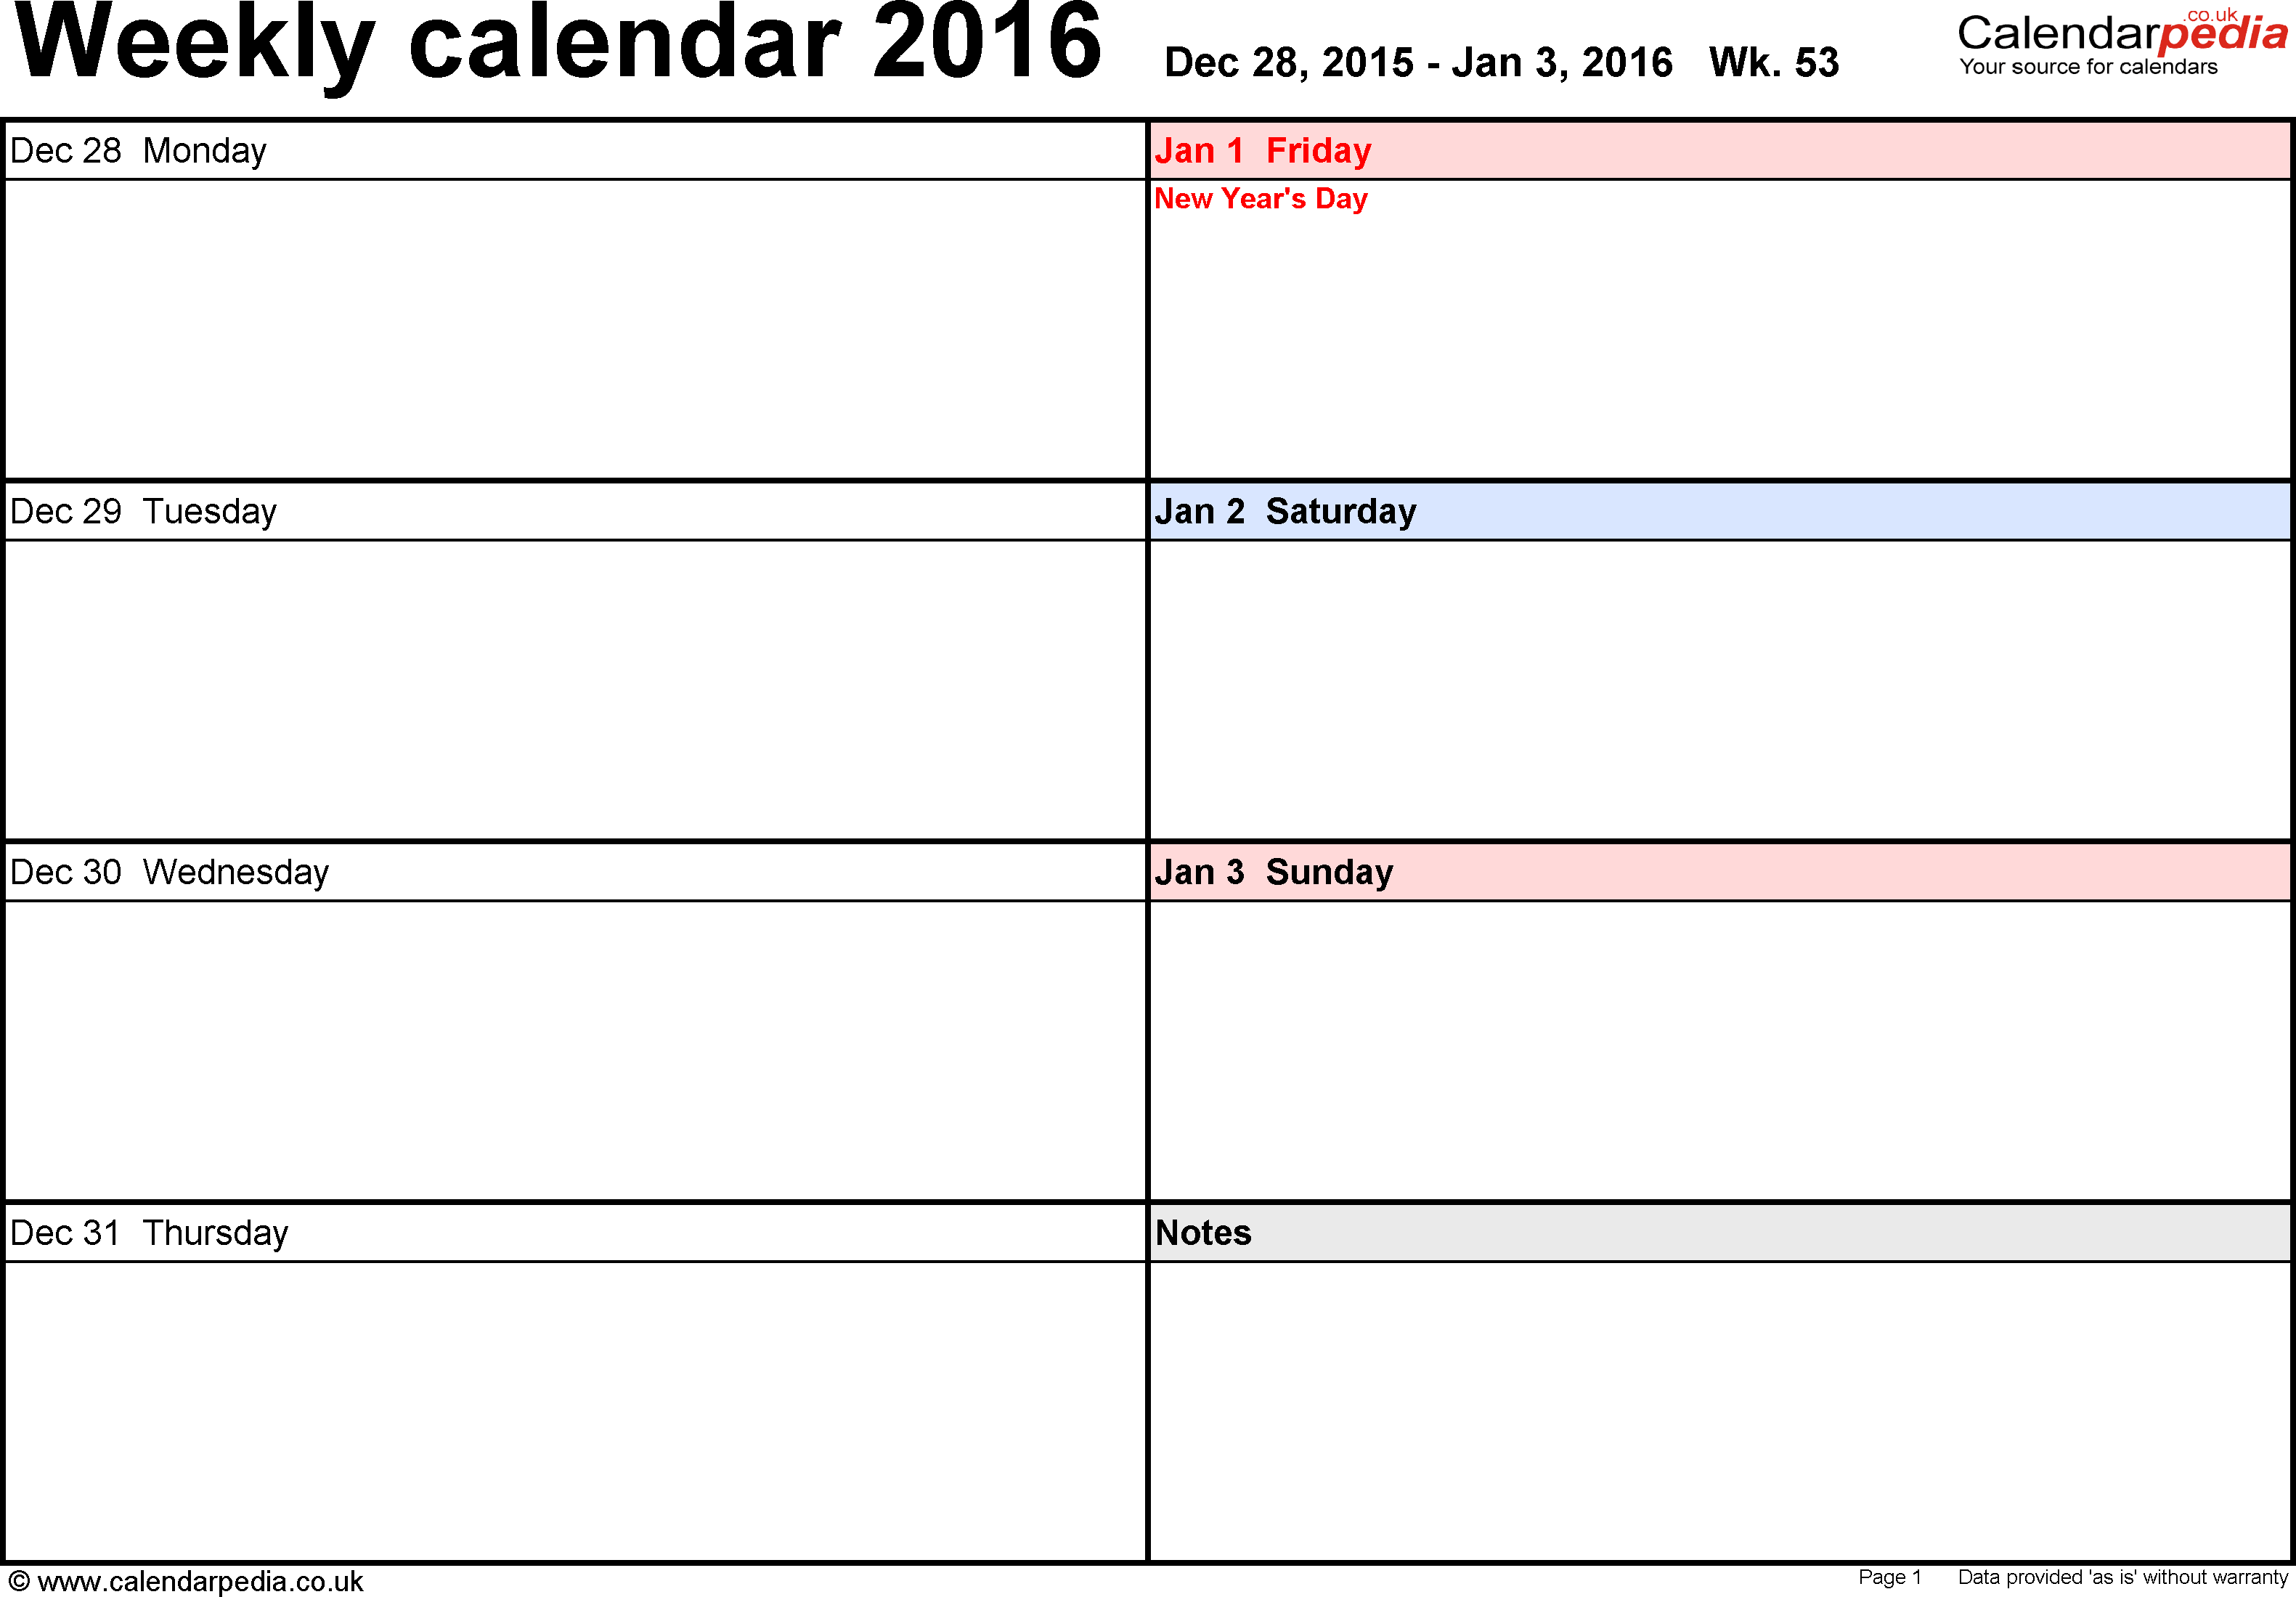 Word Template 6: Weekly Calendar 2016, Landscape Orientation, Days  Horizontally, 53 Pages  Days Of The Week Calendar Template